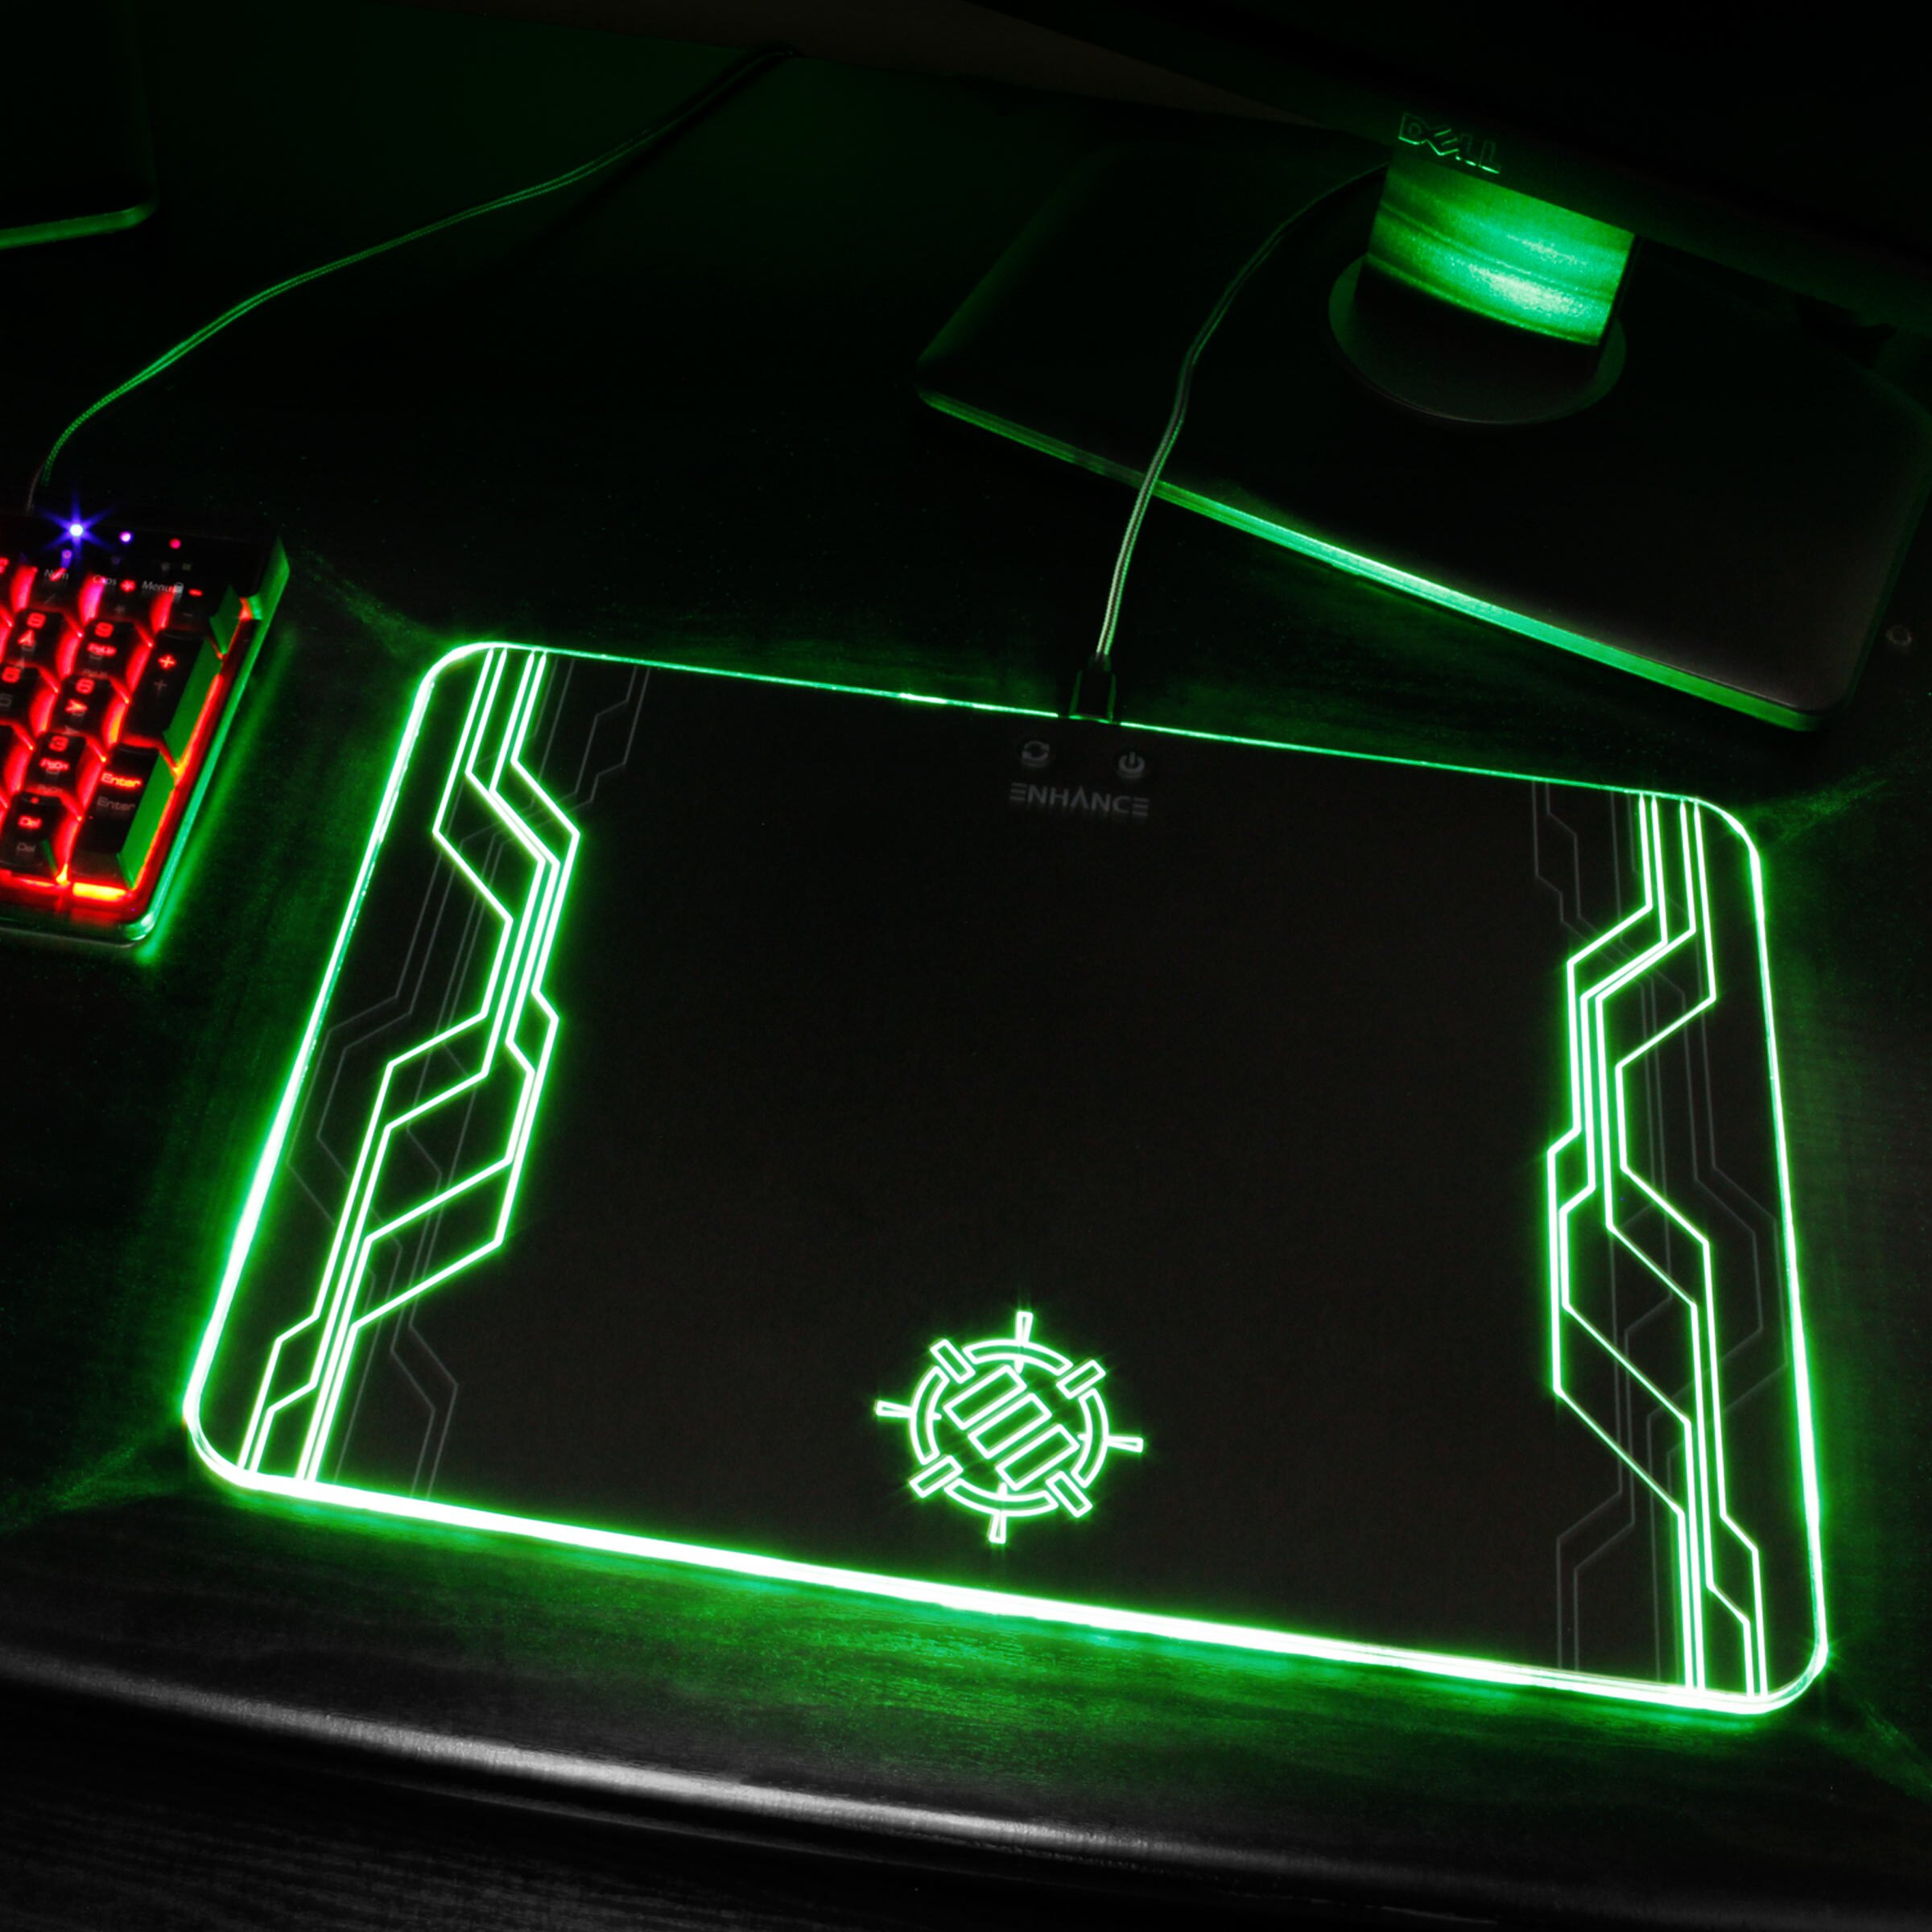 ENHANCE Large Hard Surface LED Gaming Mouse Pad - 7 RGB Light Up Modes & Brightness Control 7